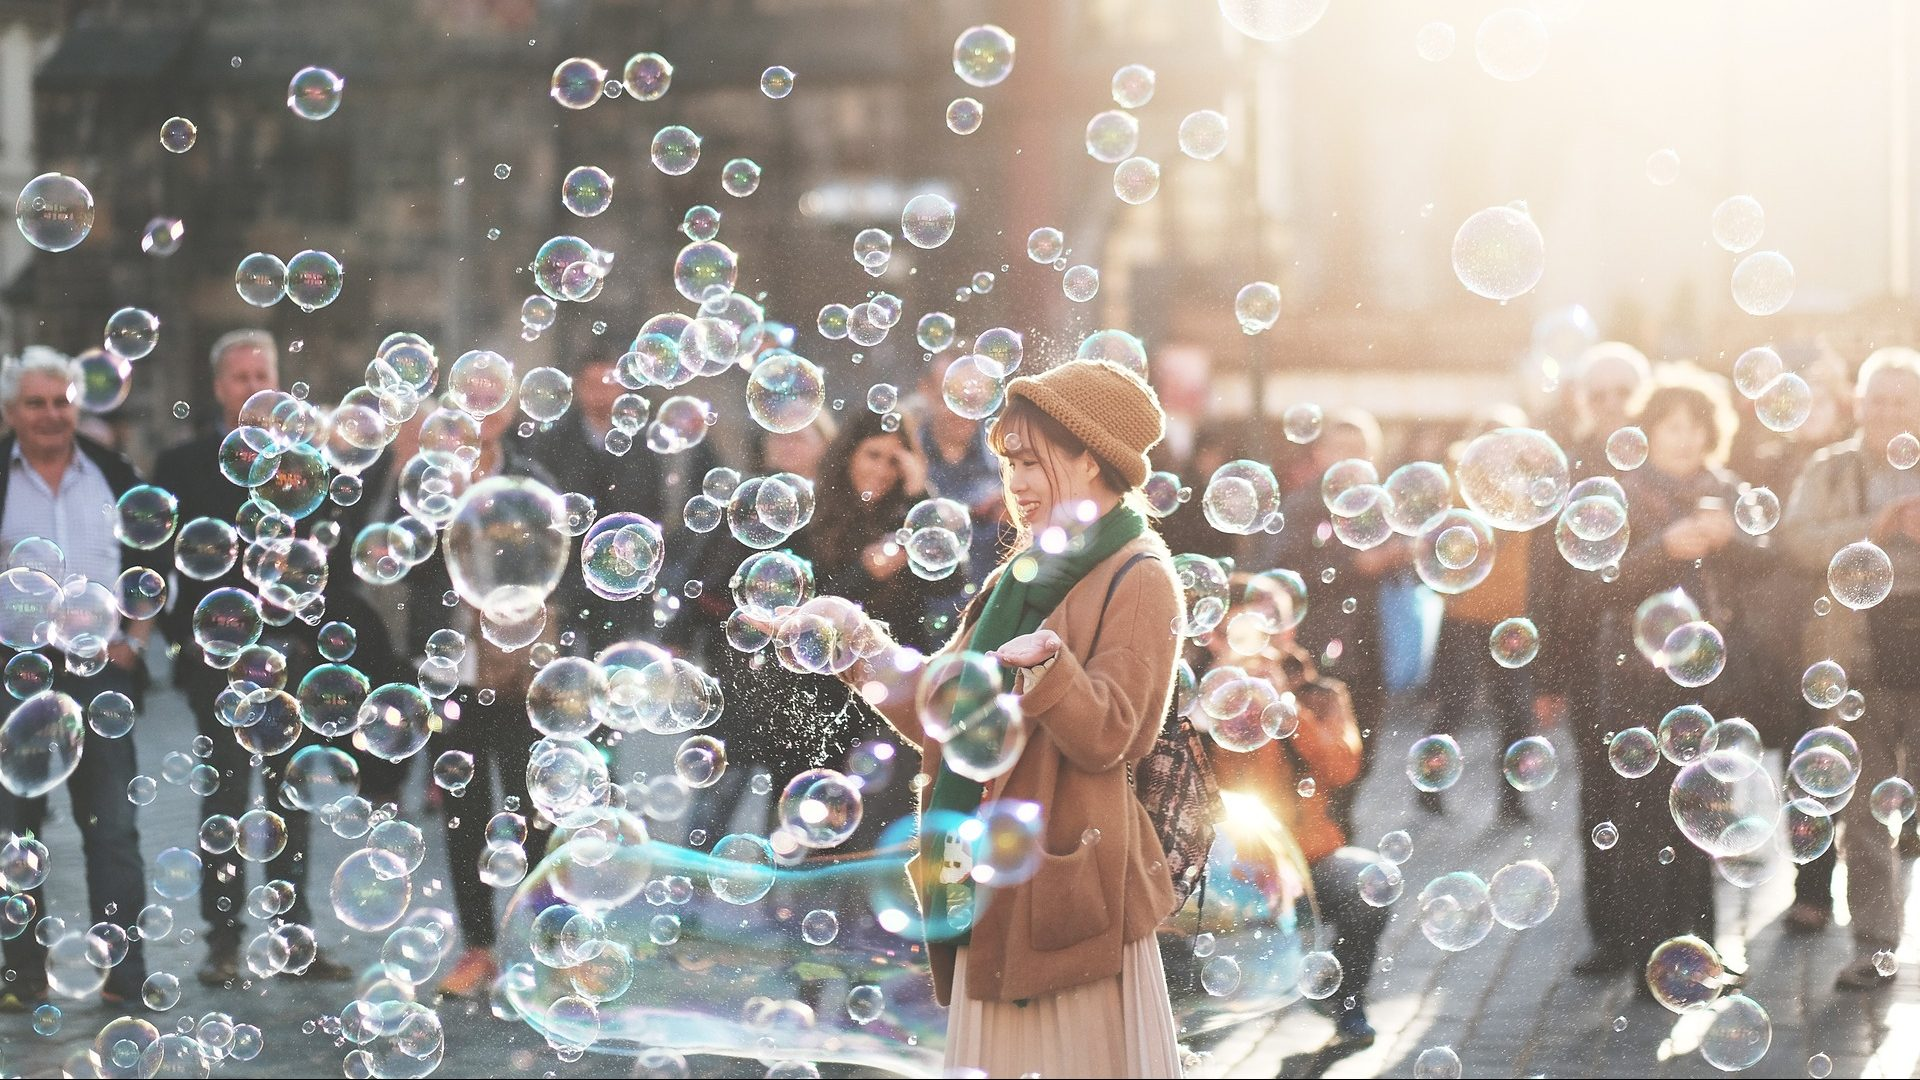 Image: a woman sanding in a cloud of bubbles